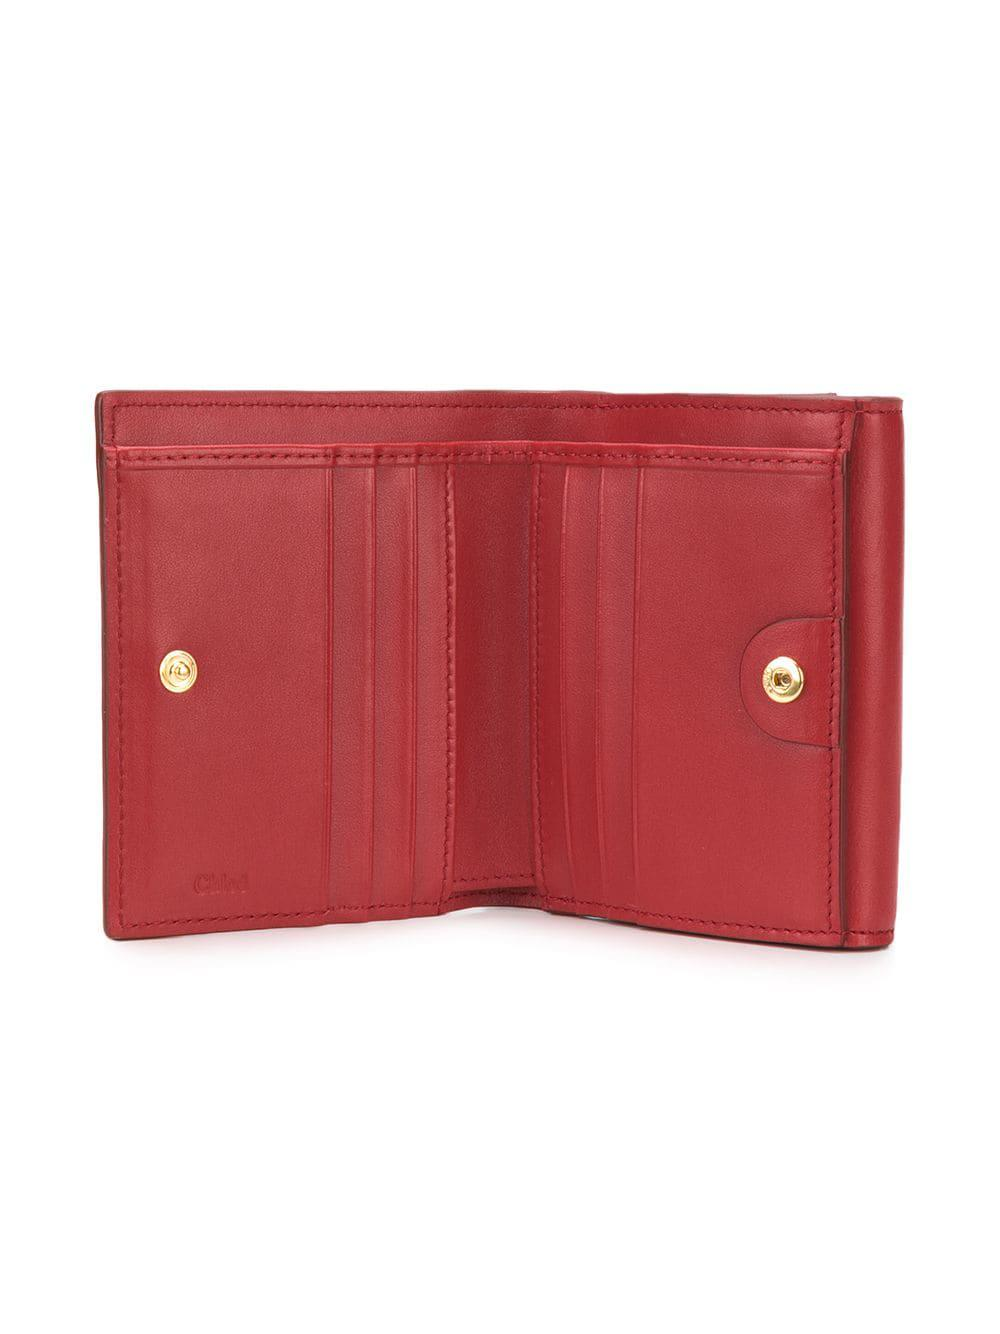 140e6032d2 Chloé Tess Small Wallet in Red - Lyst